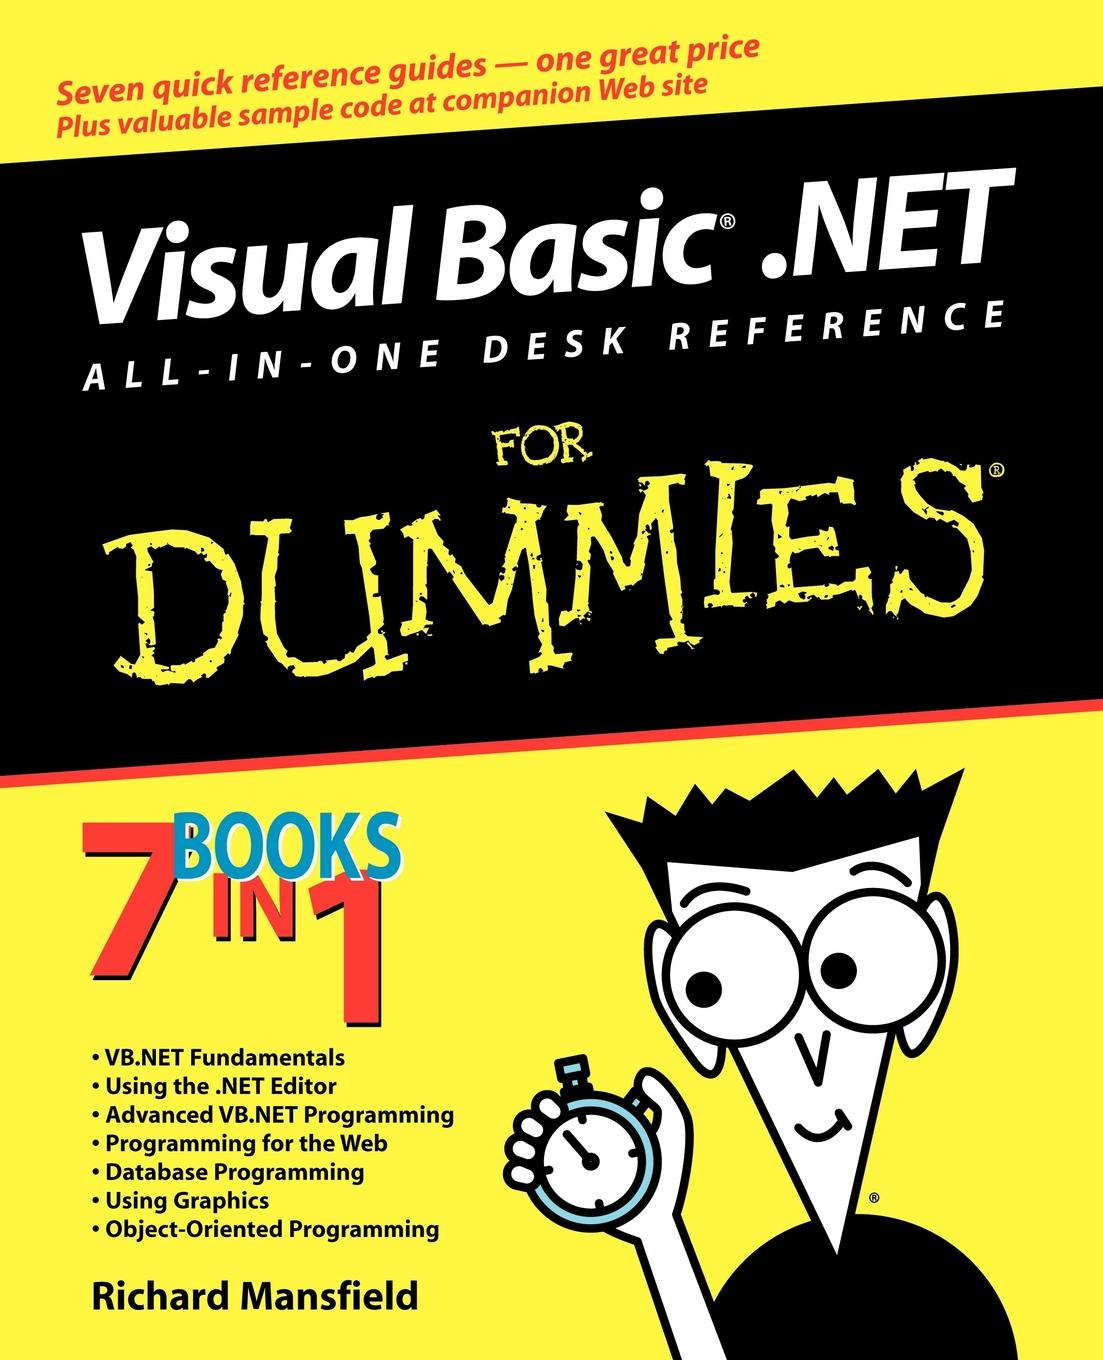 Mansfield Visual Basic .NET All One Desk richard wagner richard mansfield xml all in one desk reference for dummies